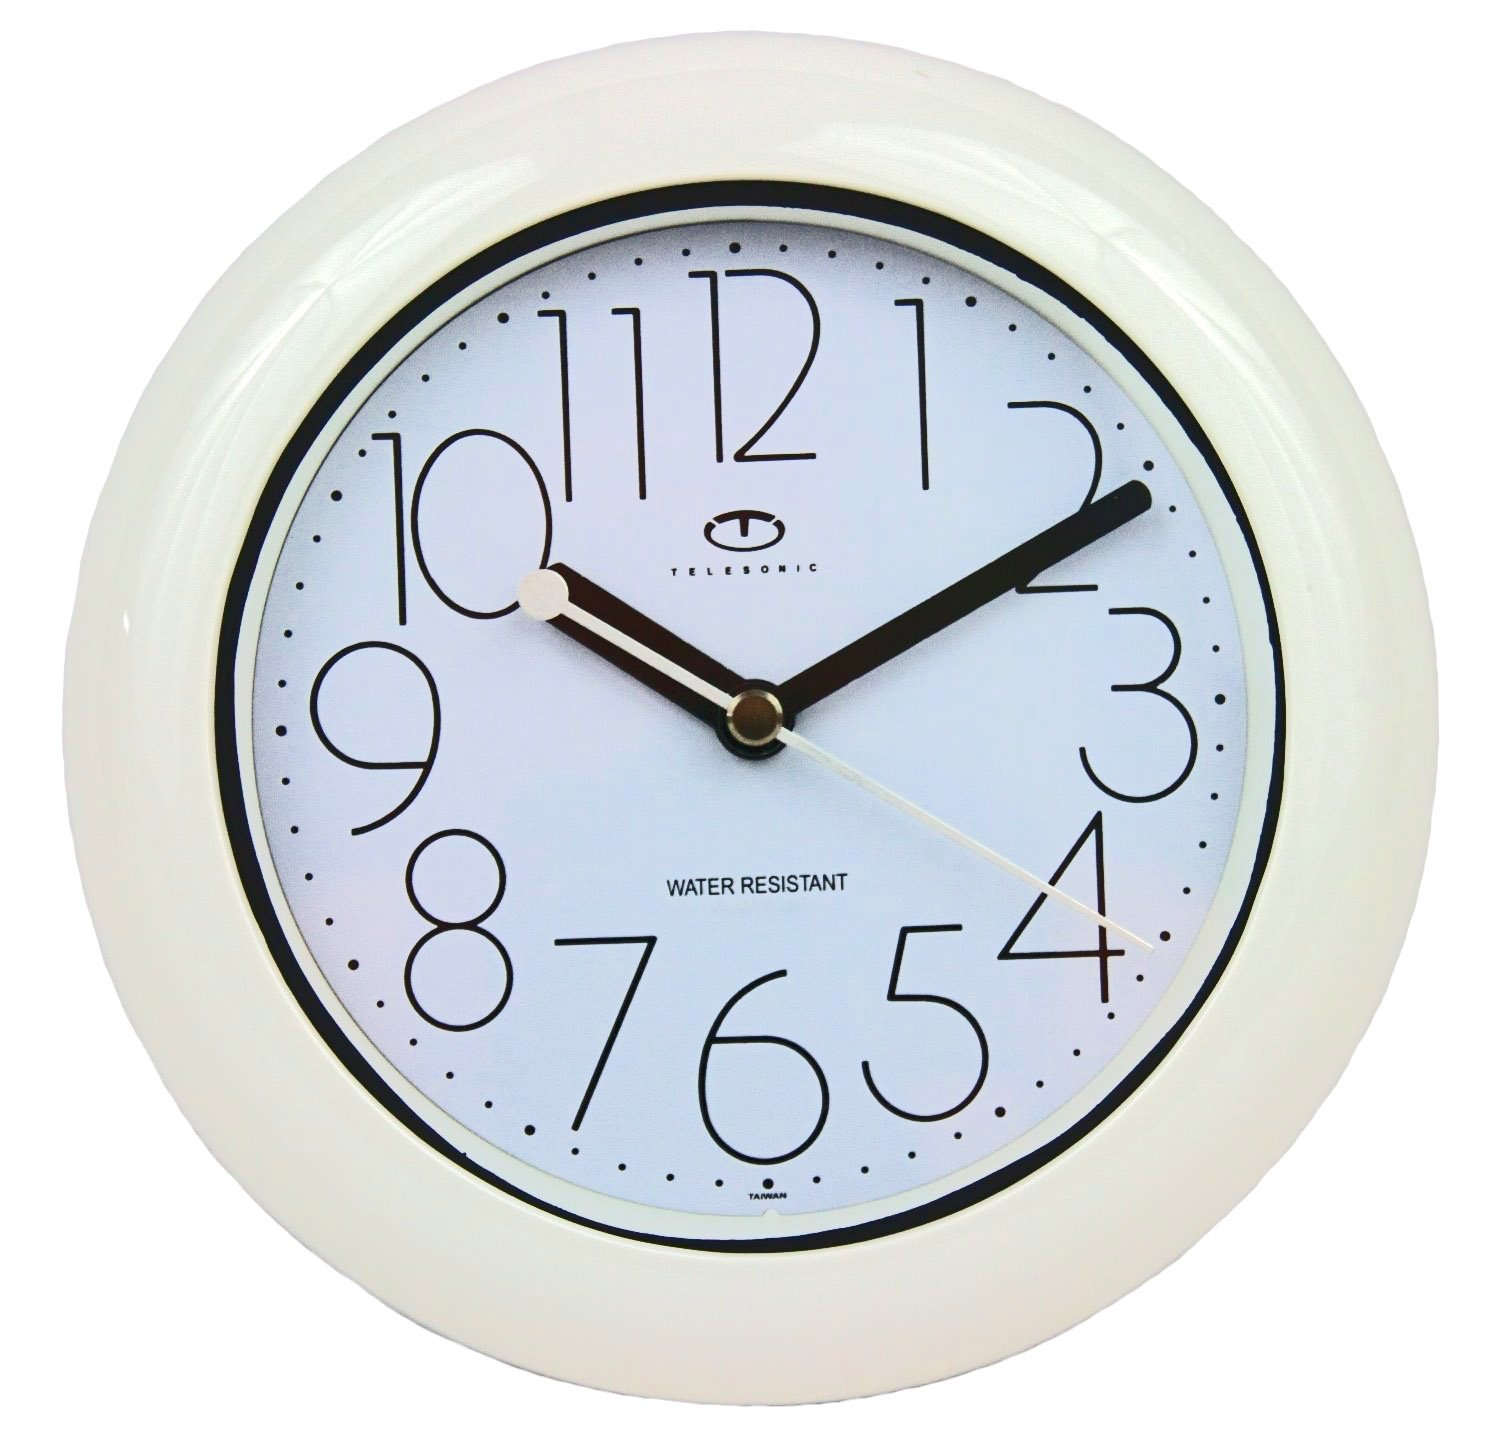 Water Resistant Wall Clock with Quiet Sweep Movement - White